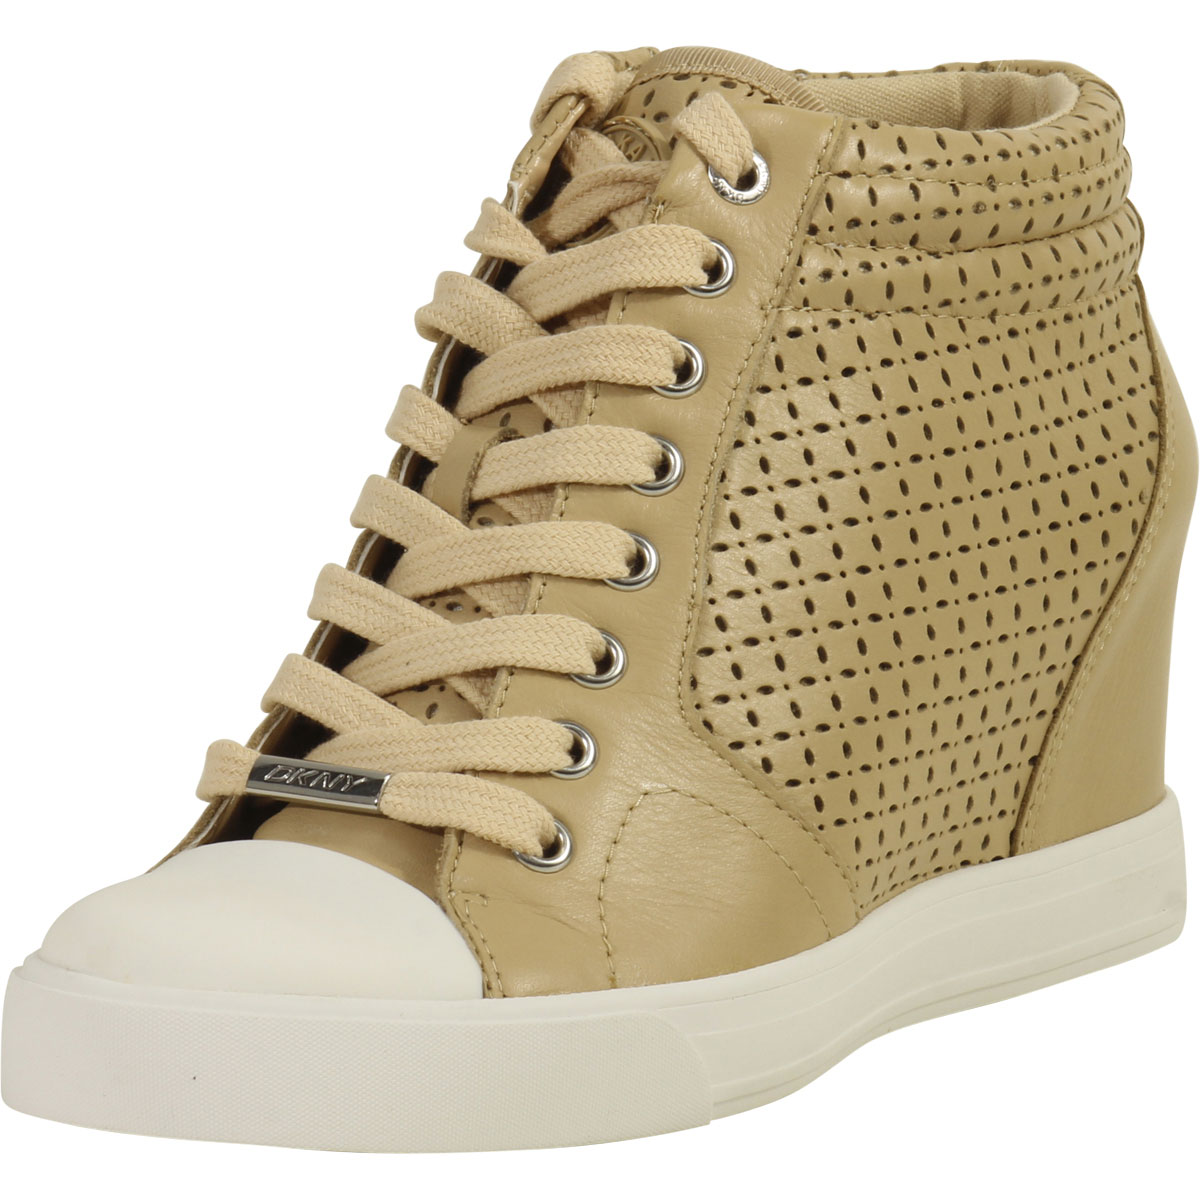 daac25cb5 Details about Donna Karan DKNY Women s Cindy Buff Fashion Wedge Sneakers  Shoes